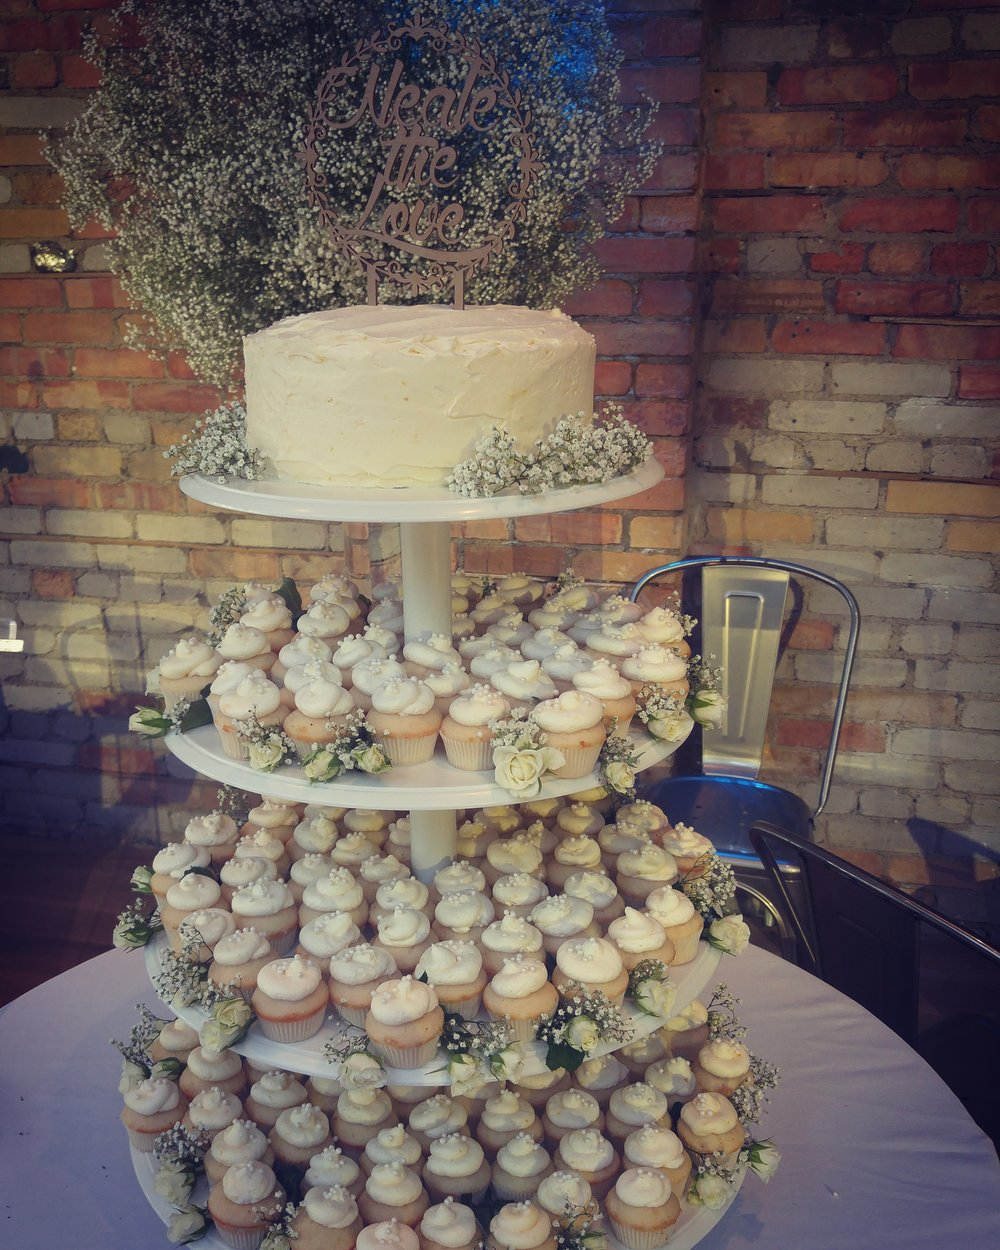 Rustic style wedding cake and baby cakes in vanilla with lemon buttercream